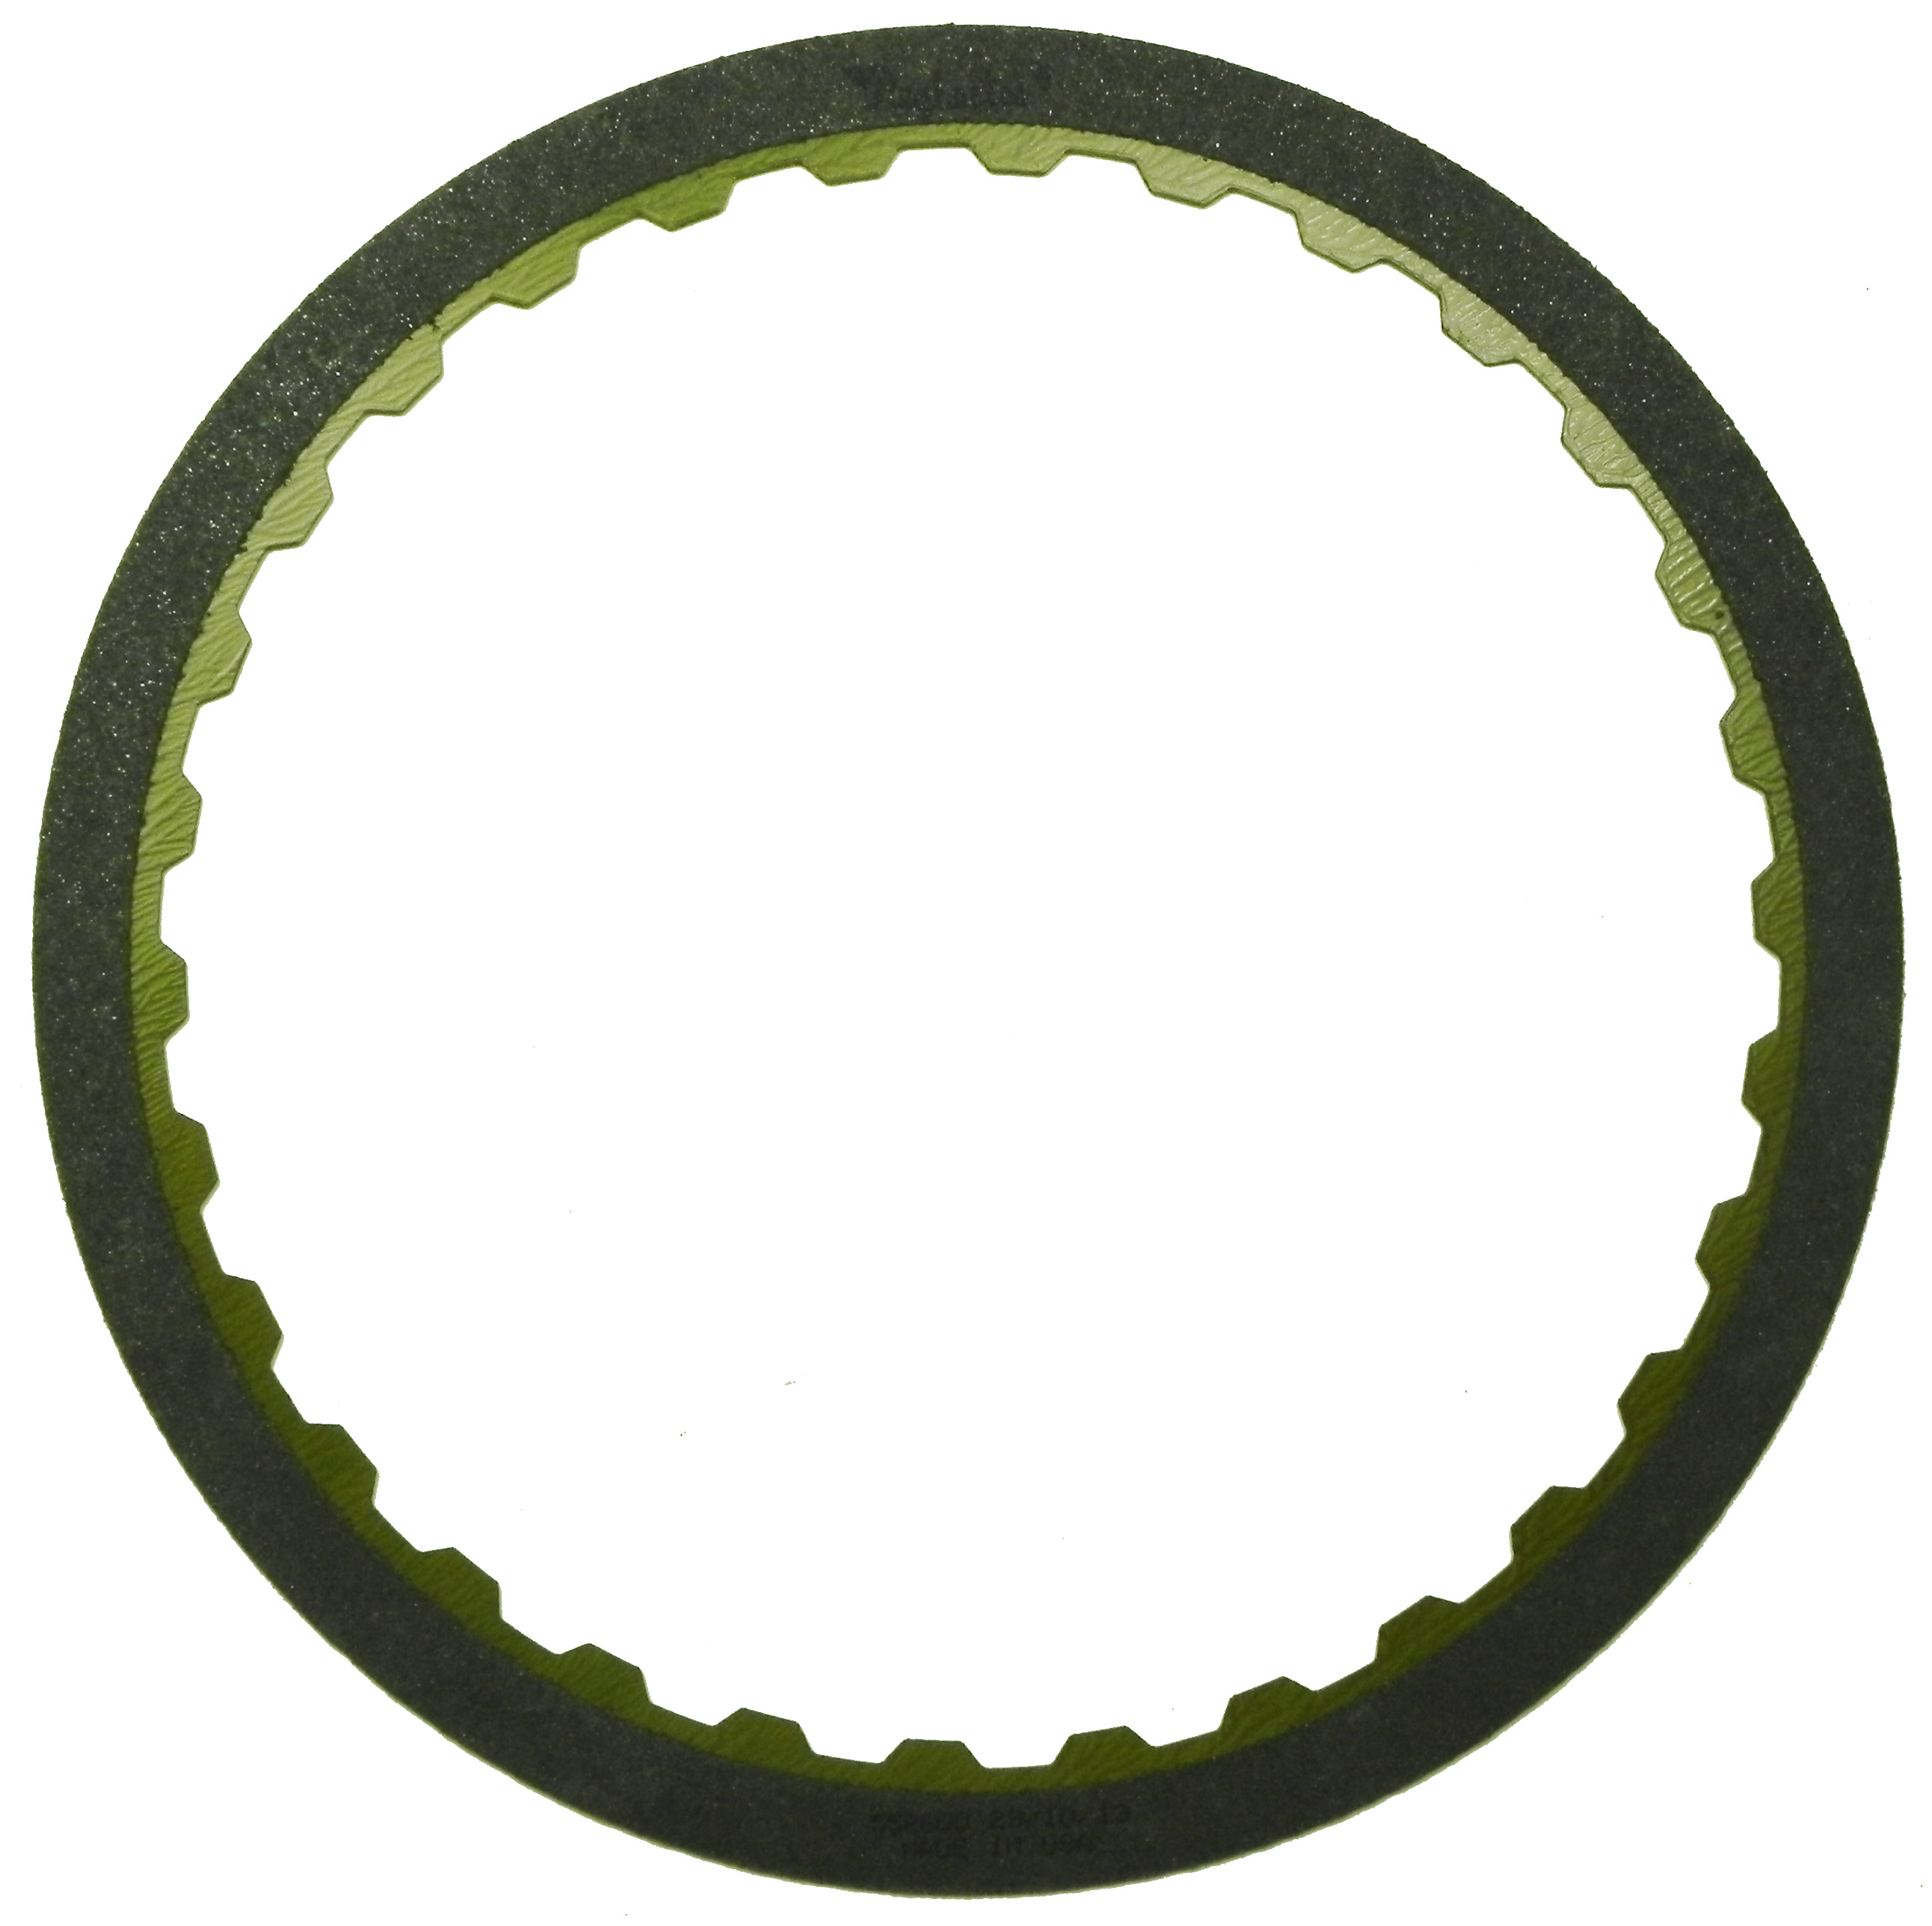 R558600   2012-ON Friction Clutch Plate High Energy 2, 6 (Waved) High Energy